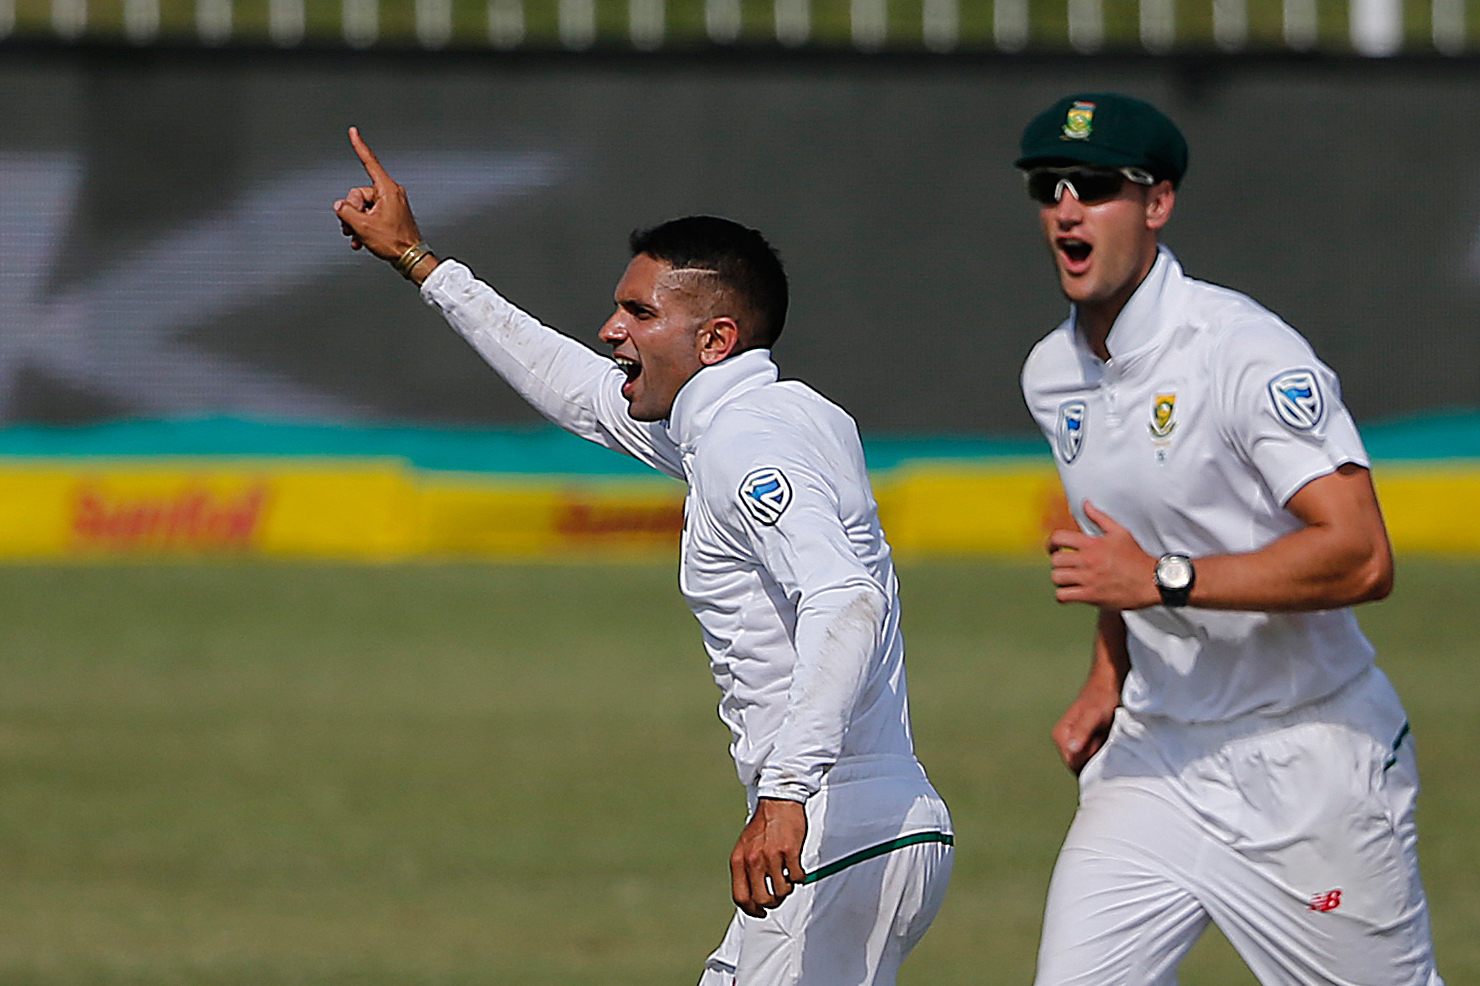 Keshav Maharaj (L) celebrates with teammates the dismissal of Shaun Marsh. Pic: MARCO LONGARI/AFP/Getty Images